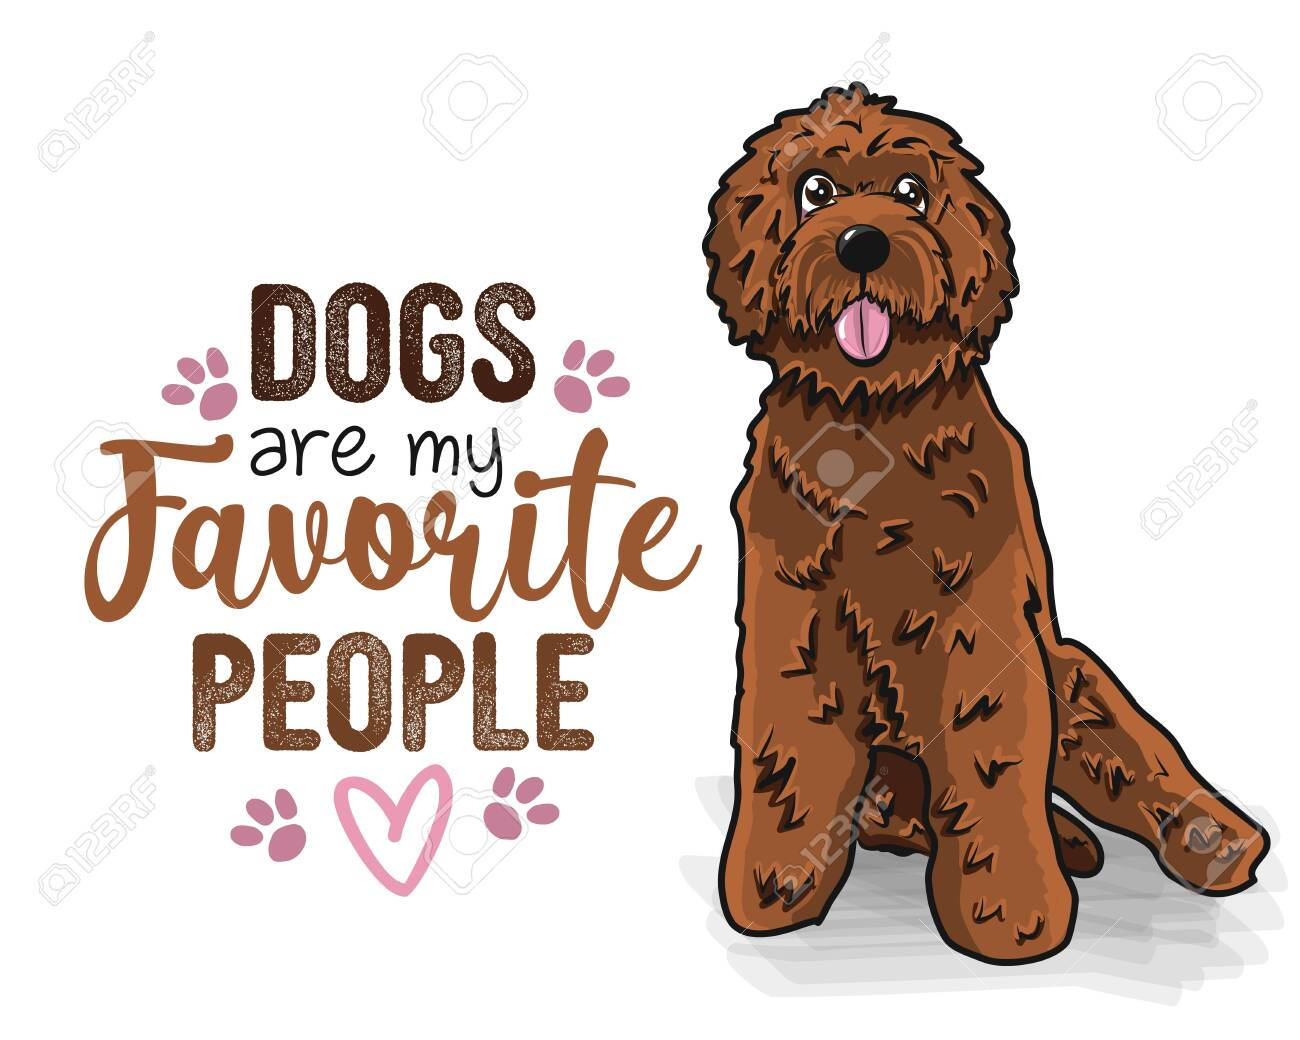 Dogs Are My Favorite People Funny Hand Drawn Vector Saying Royalty Free Cliparts Vectors And Stock Illustration Image 147780023